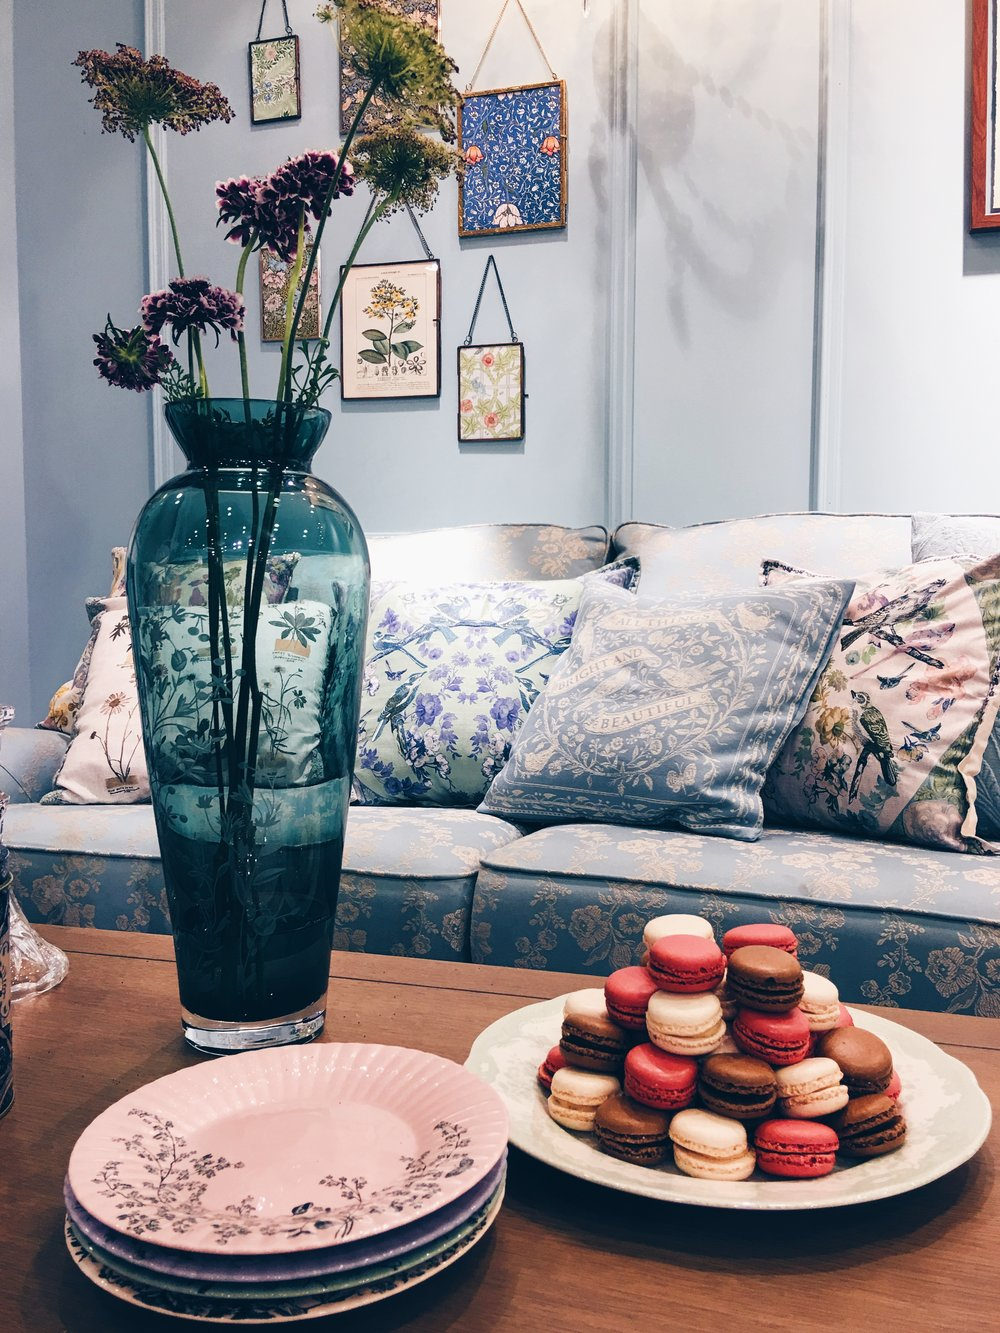 These items made up the M&S 'Soft vintage' collection. Georgia sofa in Blue Floral Jacquard, £1399. Vase & plates, price TBC. Cushions, from a selection, £25 each. William Morris prints and hanging frames, from £12-£25. All M&S.